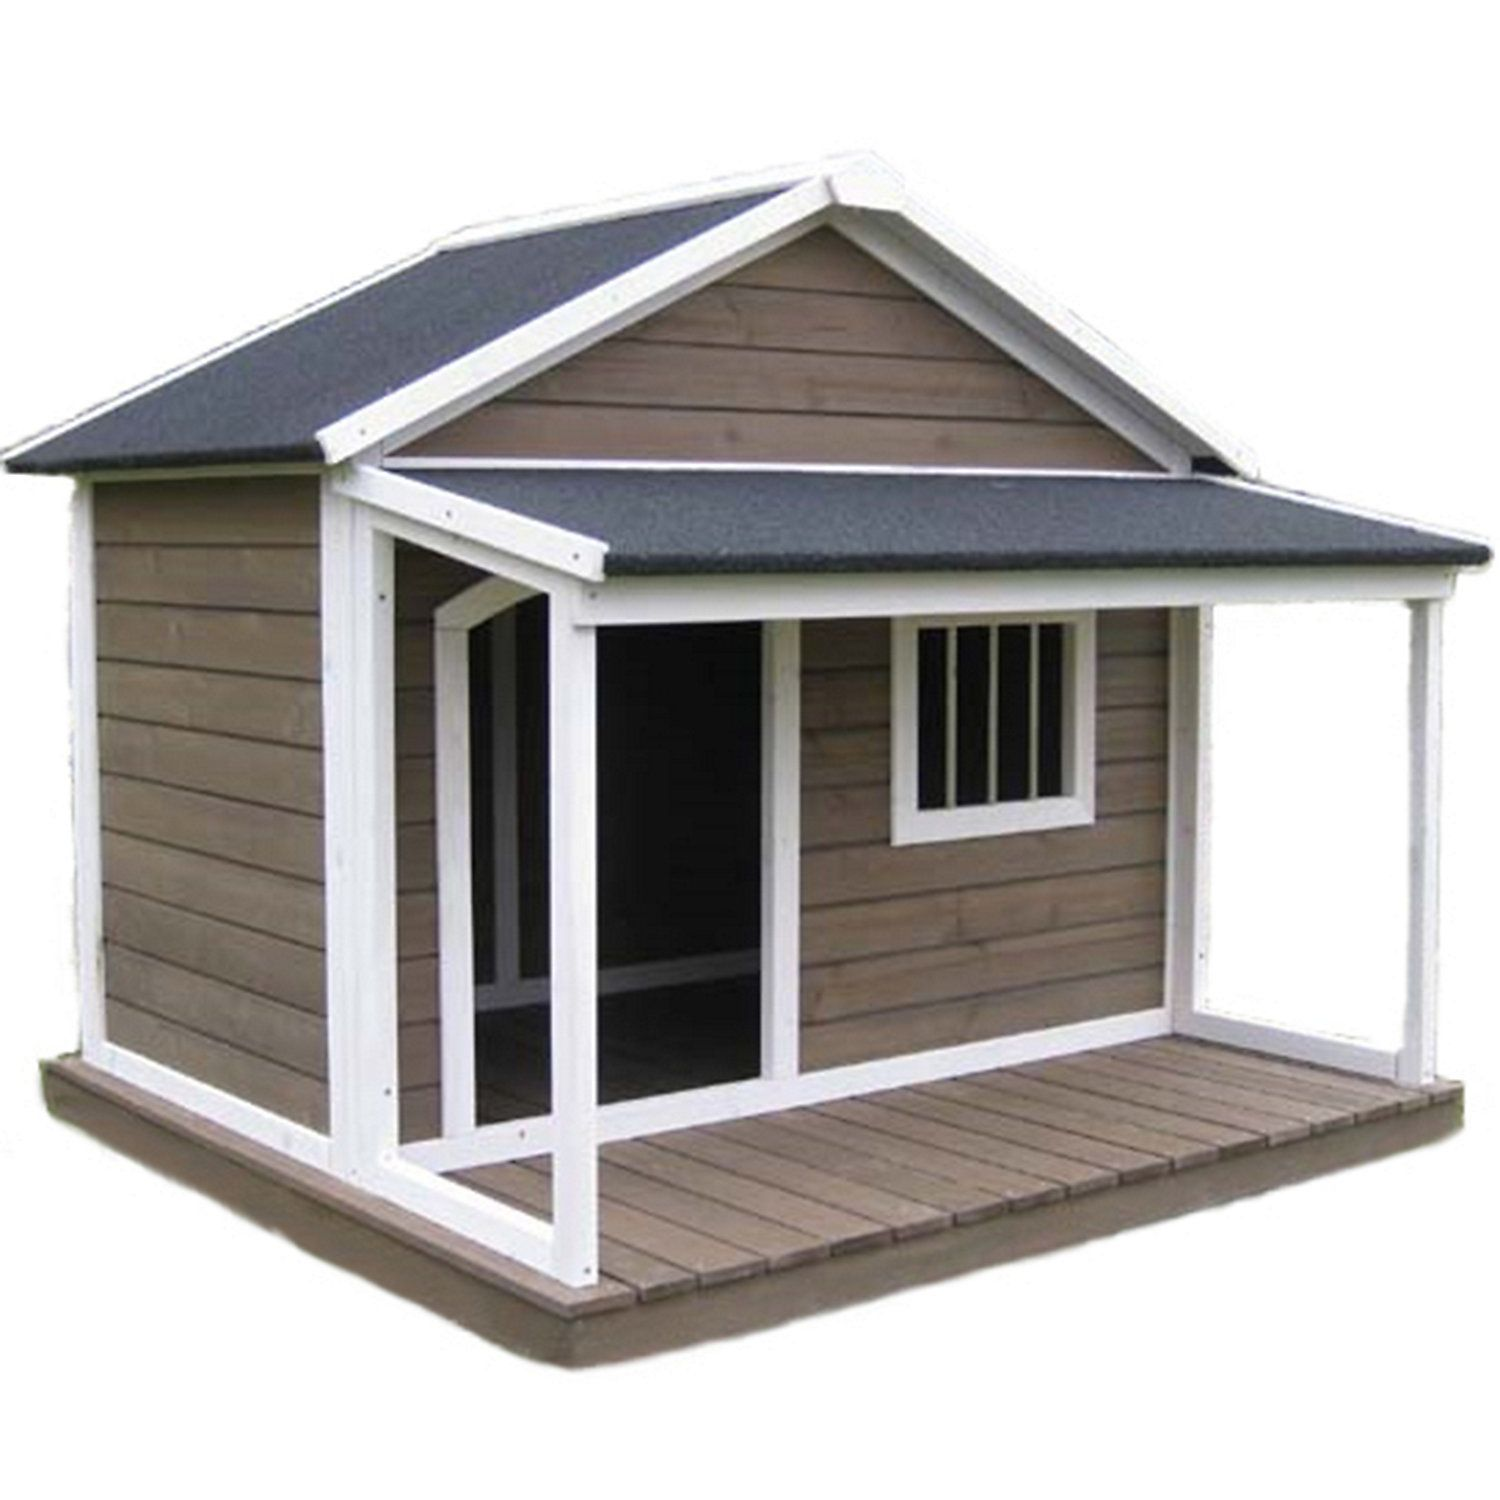 Houses & Paws House Town Pet House, Large Dog house